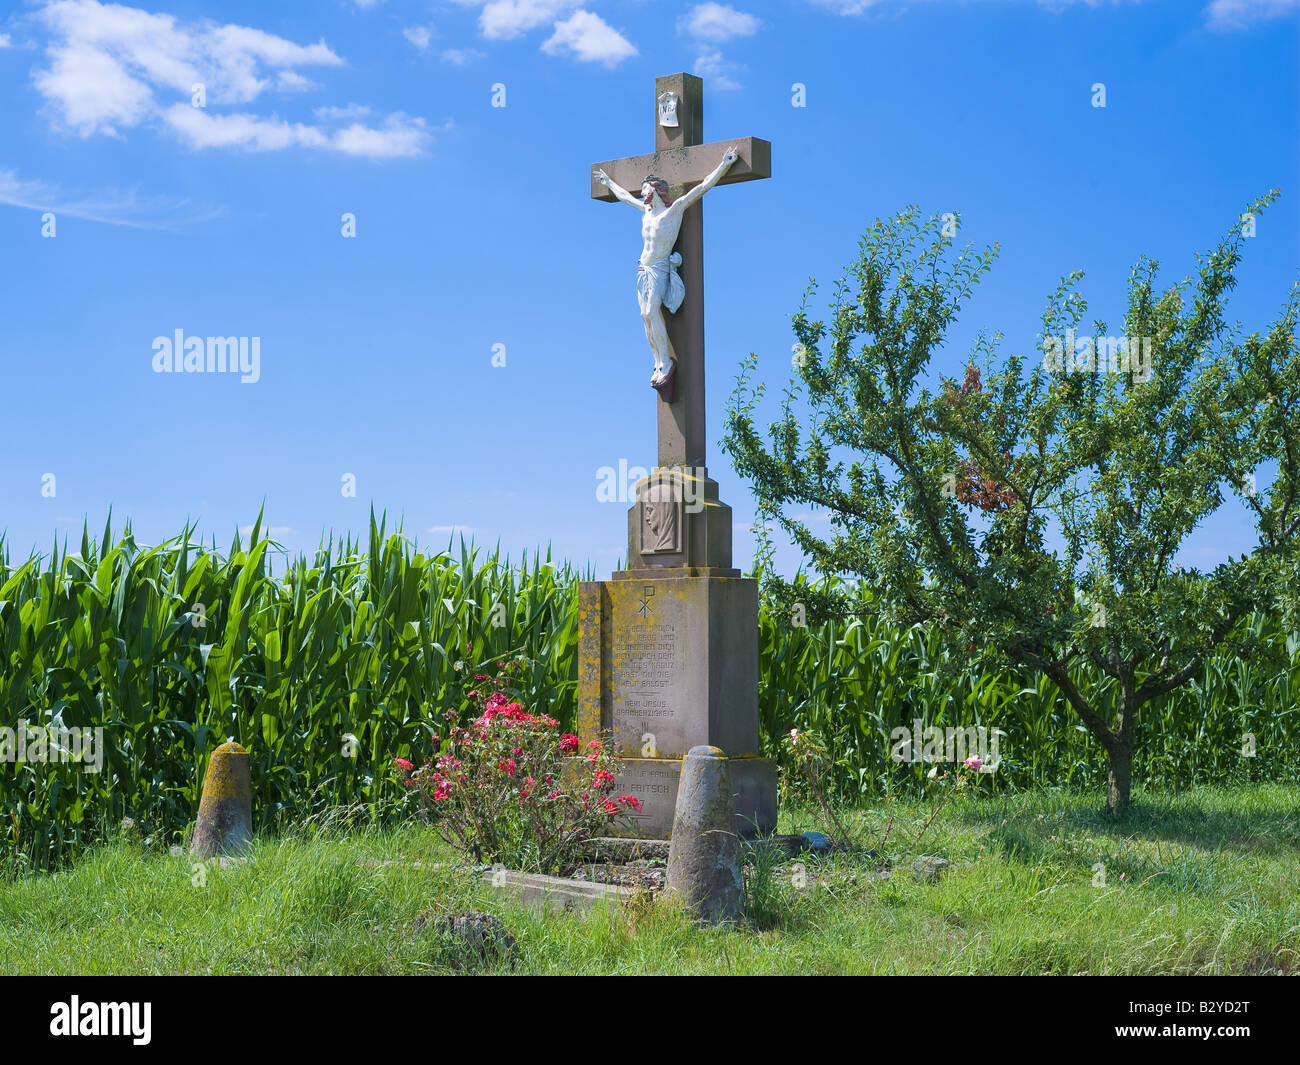 ROADSIDE FLOWERED CROSS AND CORN FIELD ALSACE FRANCE - Stock Image